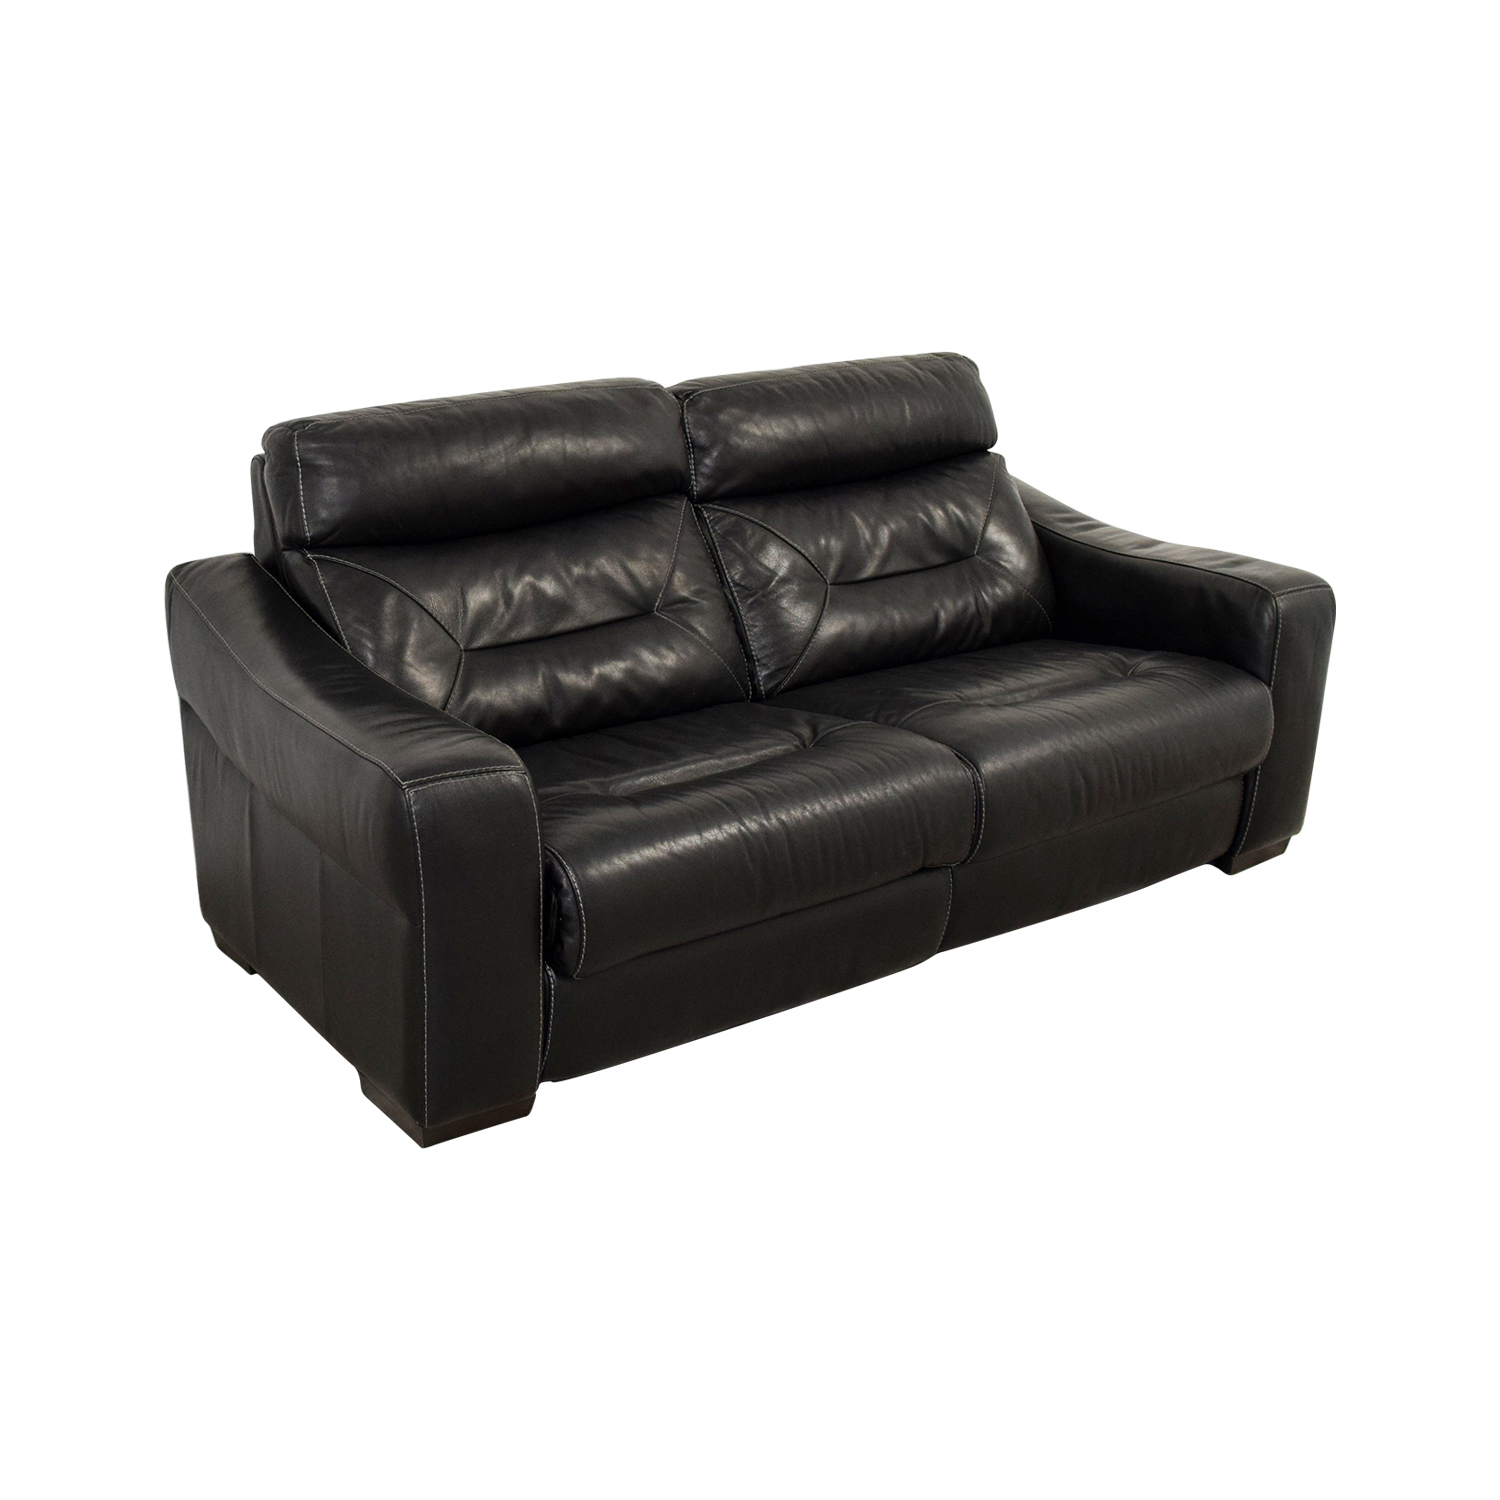 54 Off Macy S Macy S Black Leather Recliner Sofa Chairs